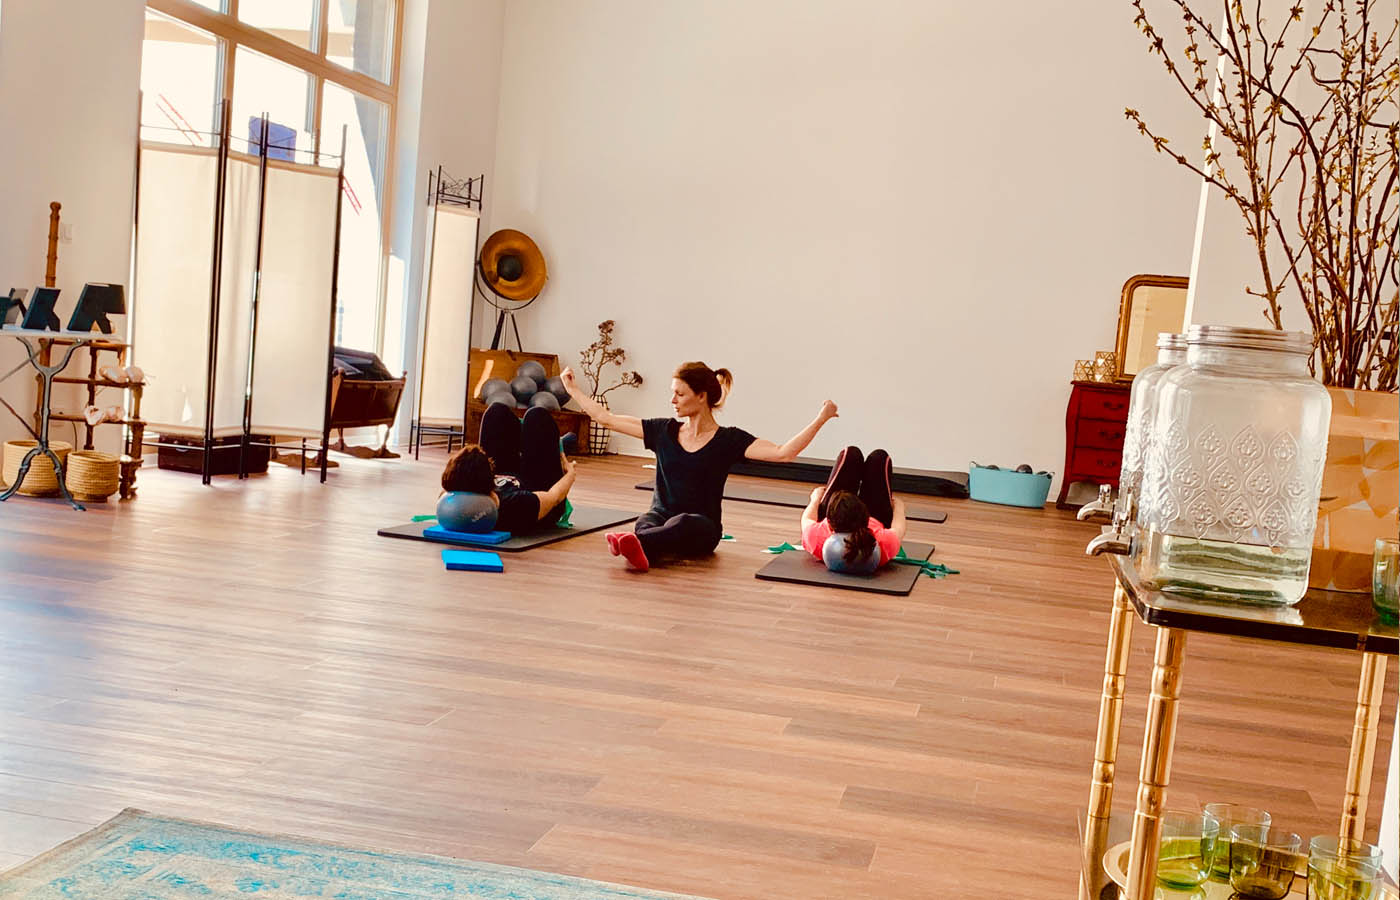 Pilates Movement Berlin Flottwellstr training